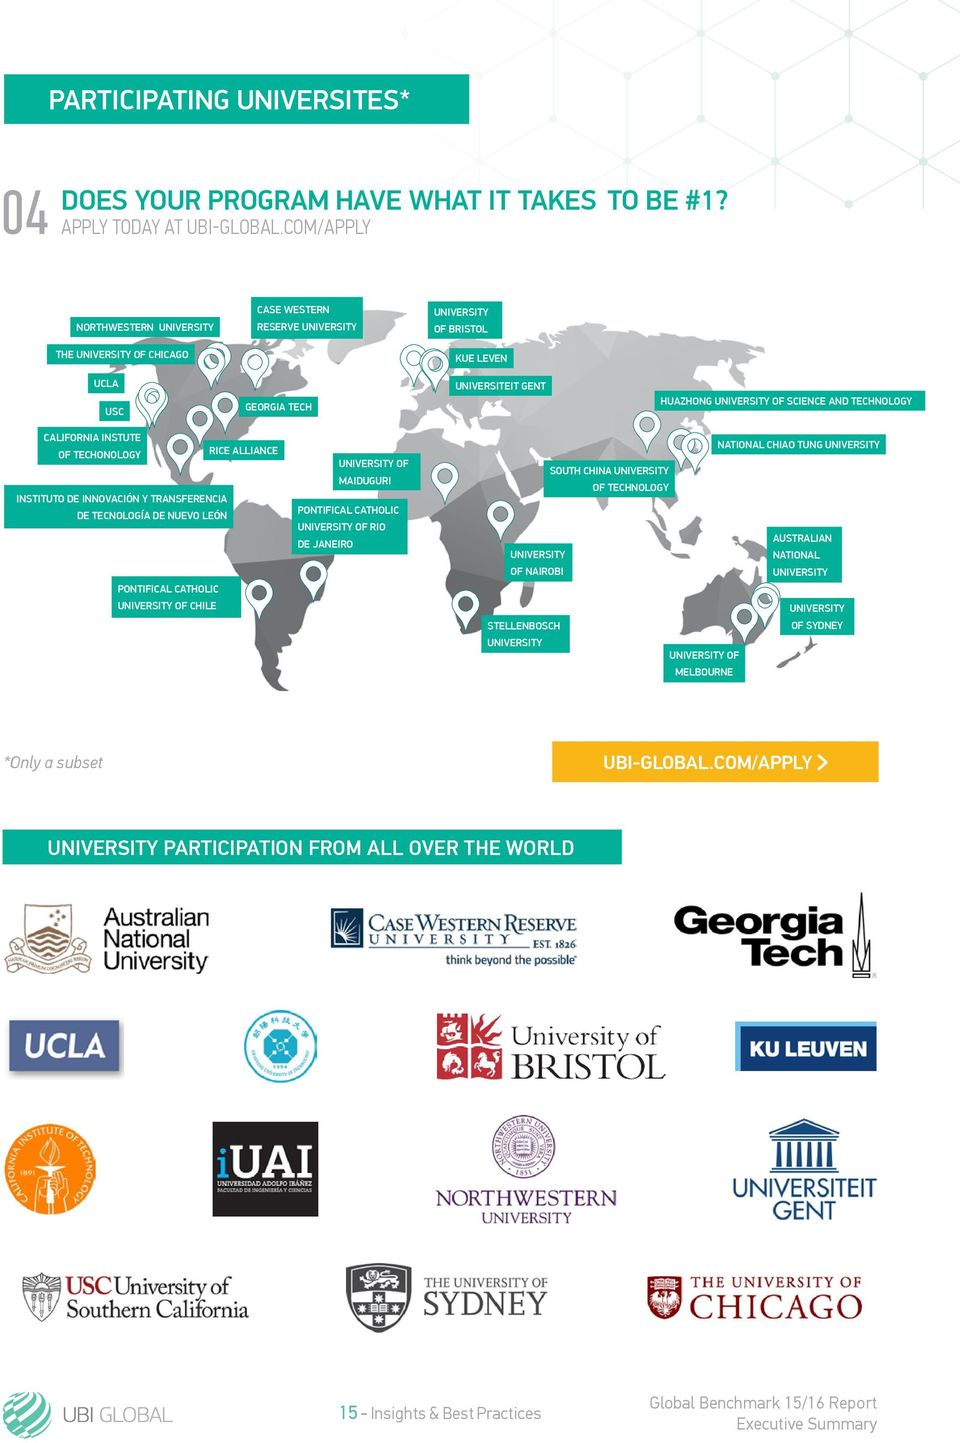 TECHNOLOGY CALIFORNIA INSTUTE OF TECHONOLOGY RICE ALLIANCE INSTITUTO DE INNOVACIÓN Y TRANSFERENCIA DE TECNOLOGÍA DE NUEVO LEÓN PONTIFICAL CATHOLIC UNIVERSITY OF CHILE UNIVERSITY OF MAIDUGURI